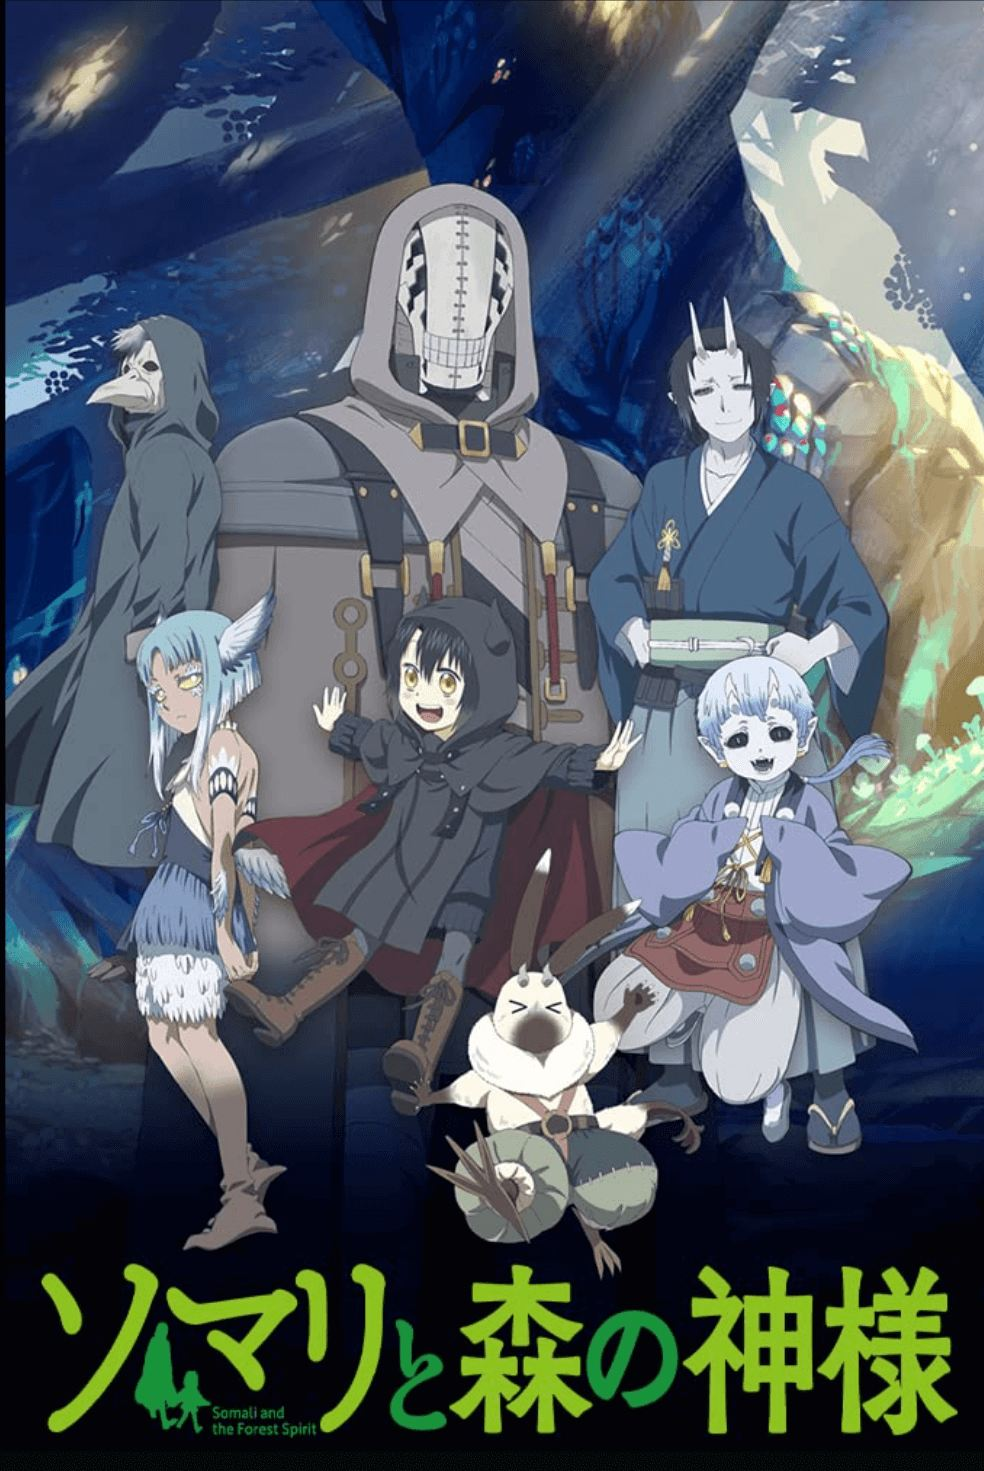 Best Anime 2020 6 - somali and the forest spirit